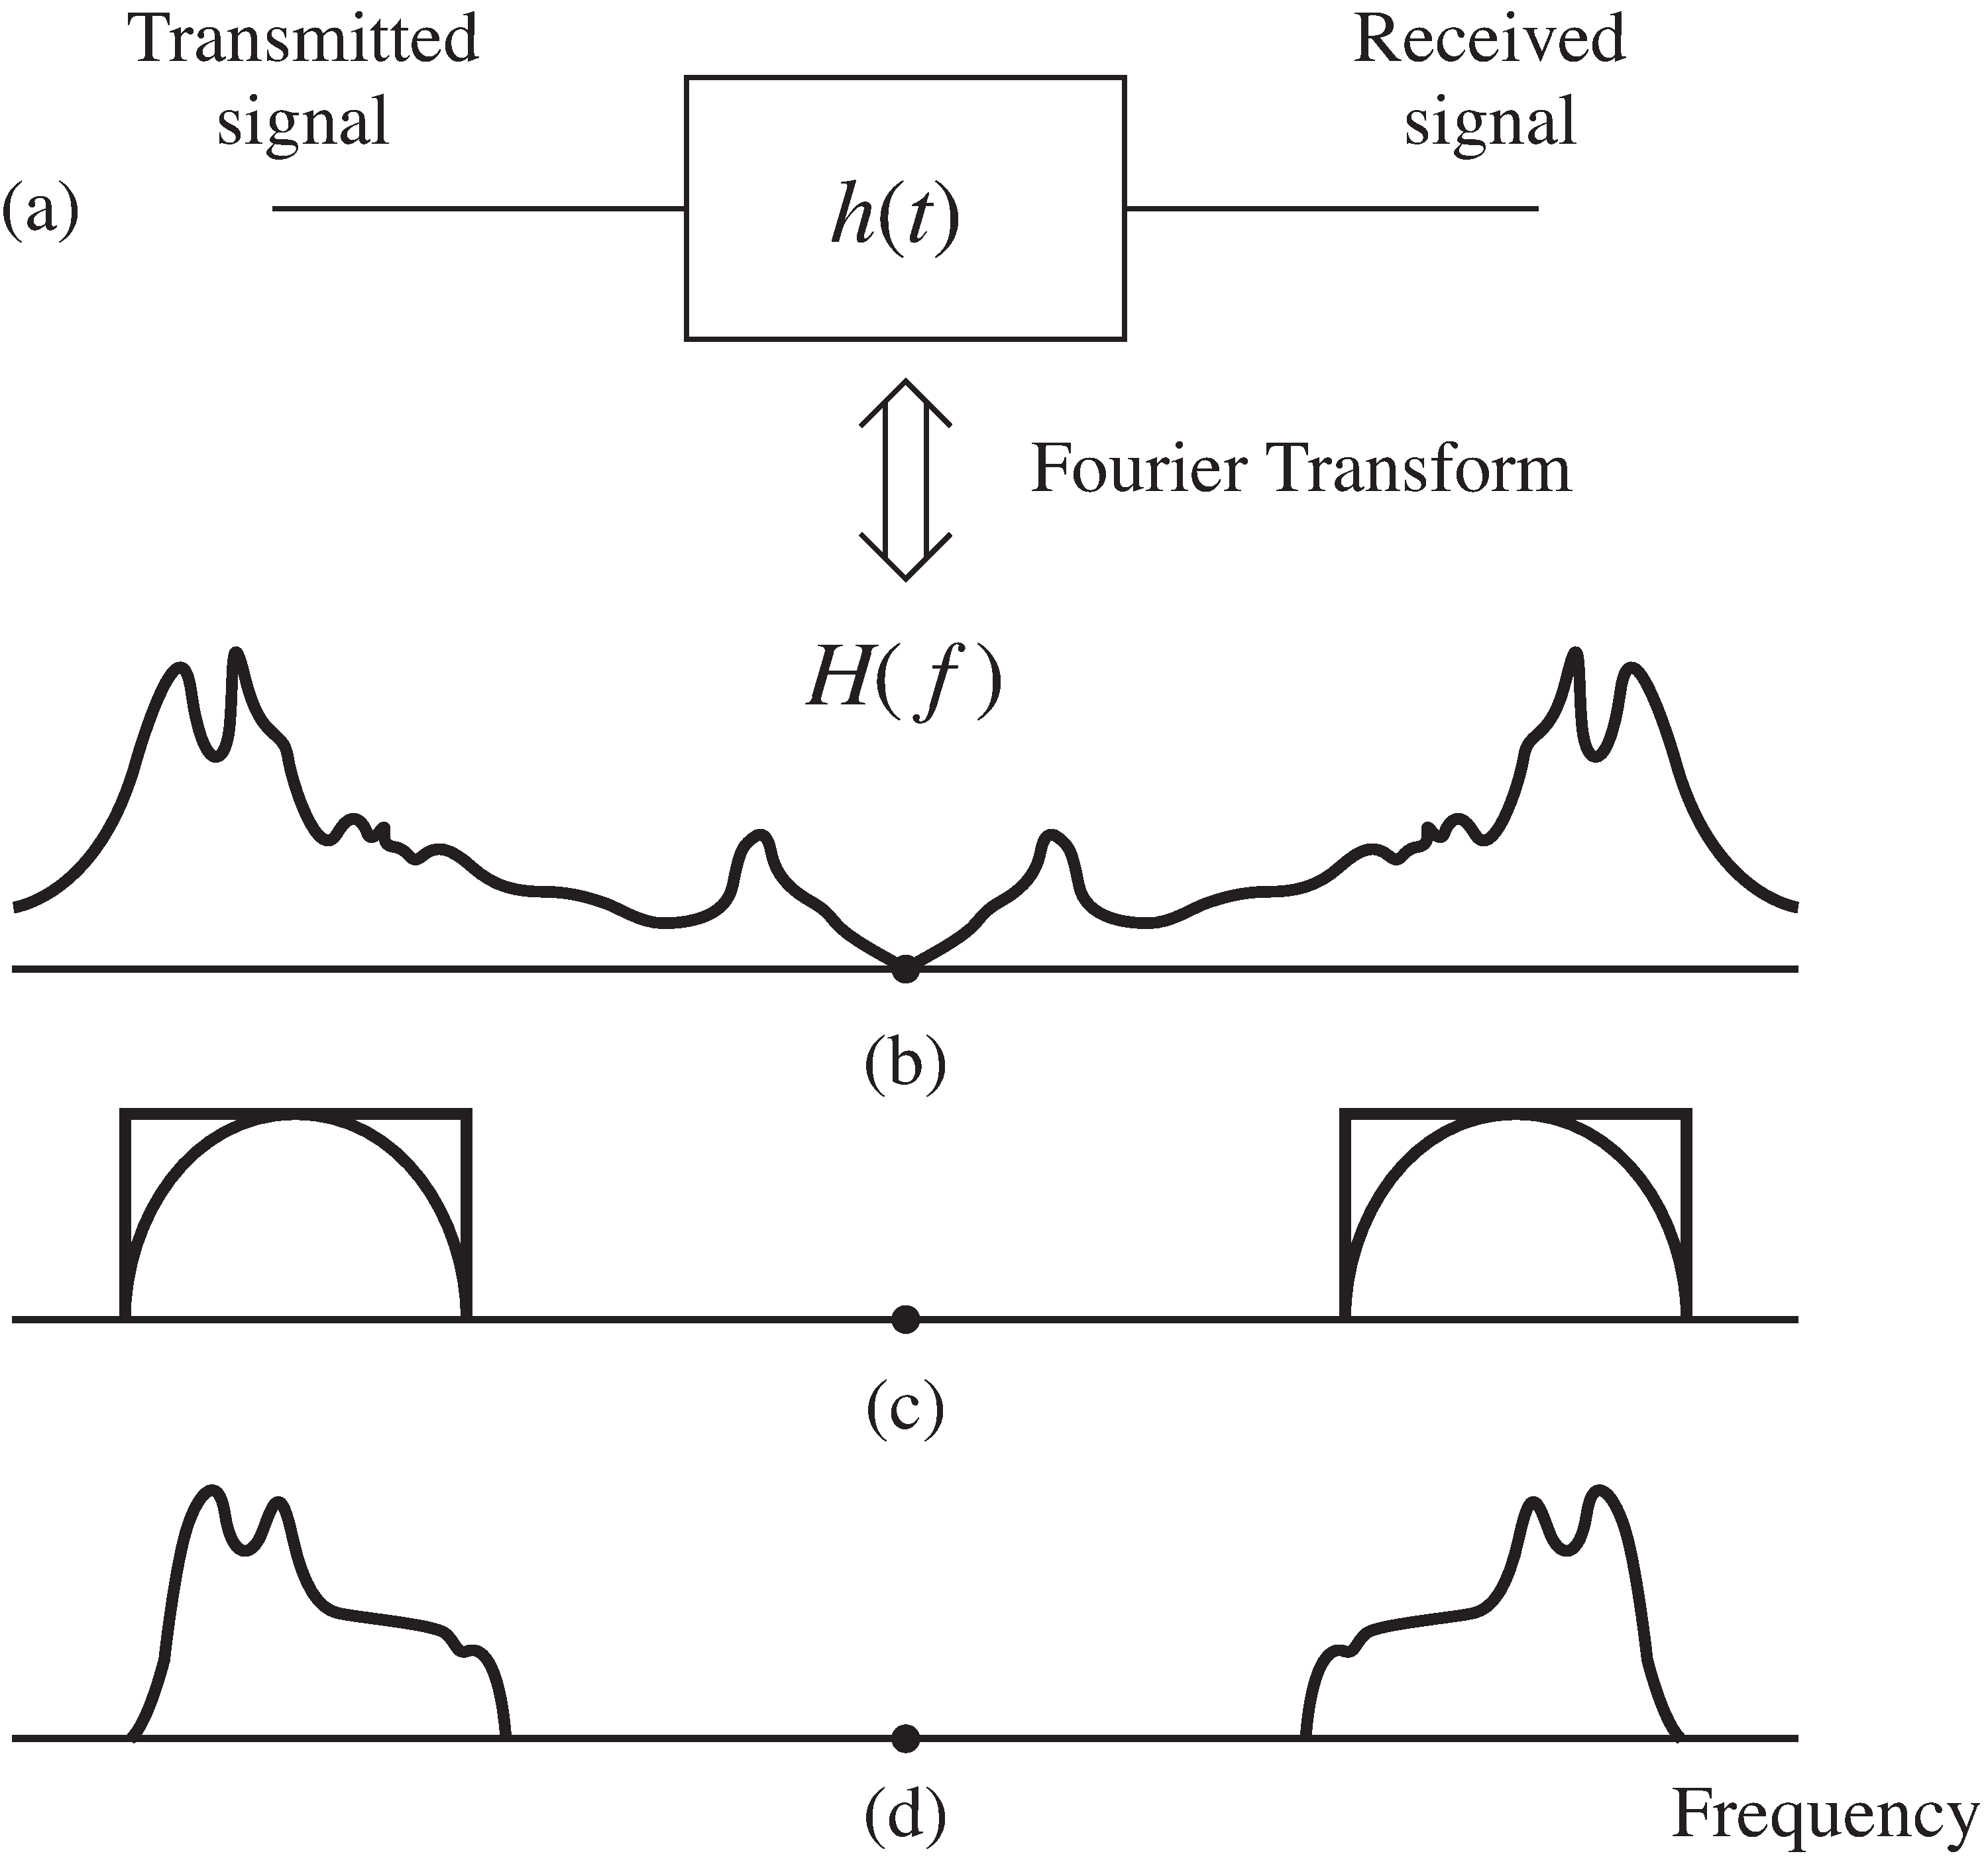 (a) The channel model Equation 4 as a filter. (b) The frequency response of the filter. (c) An idealized BPF and the spectrum of the signal. The product of (b) and (c) gives (d), the distorted spectrum at the receiver.